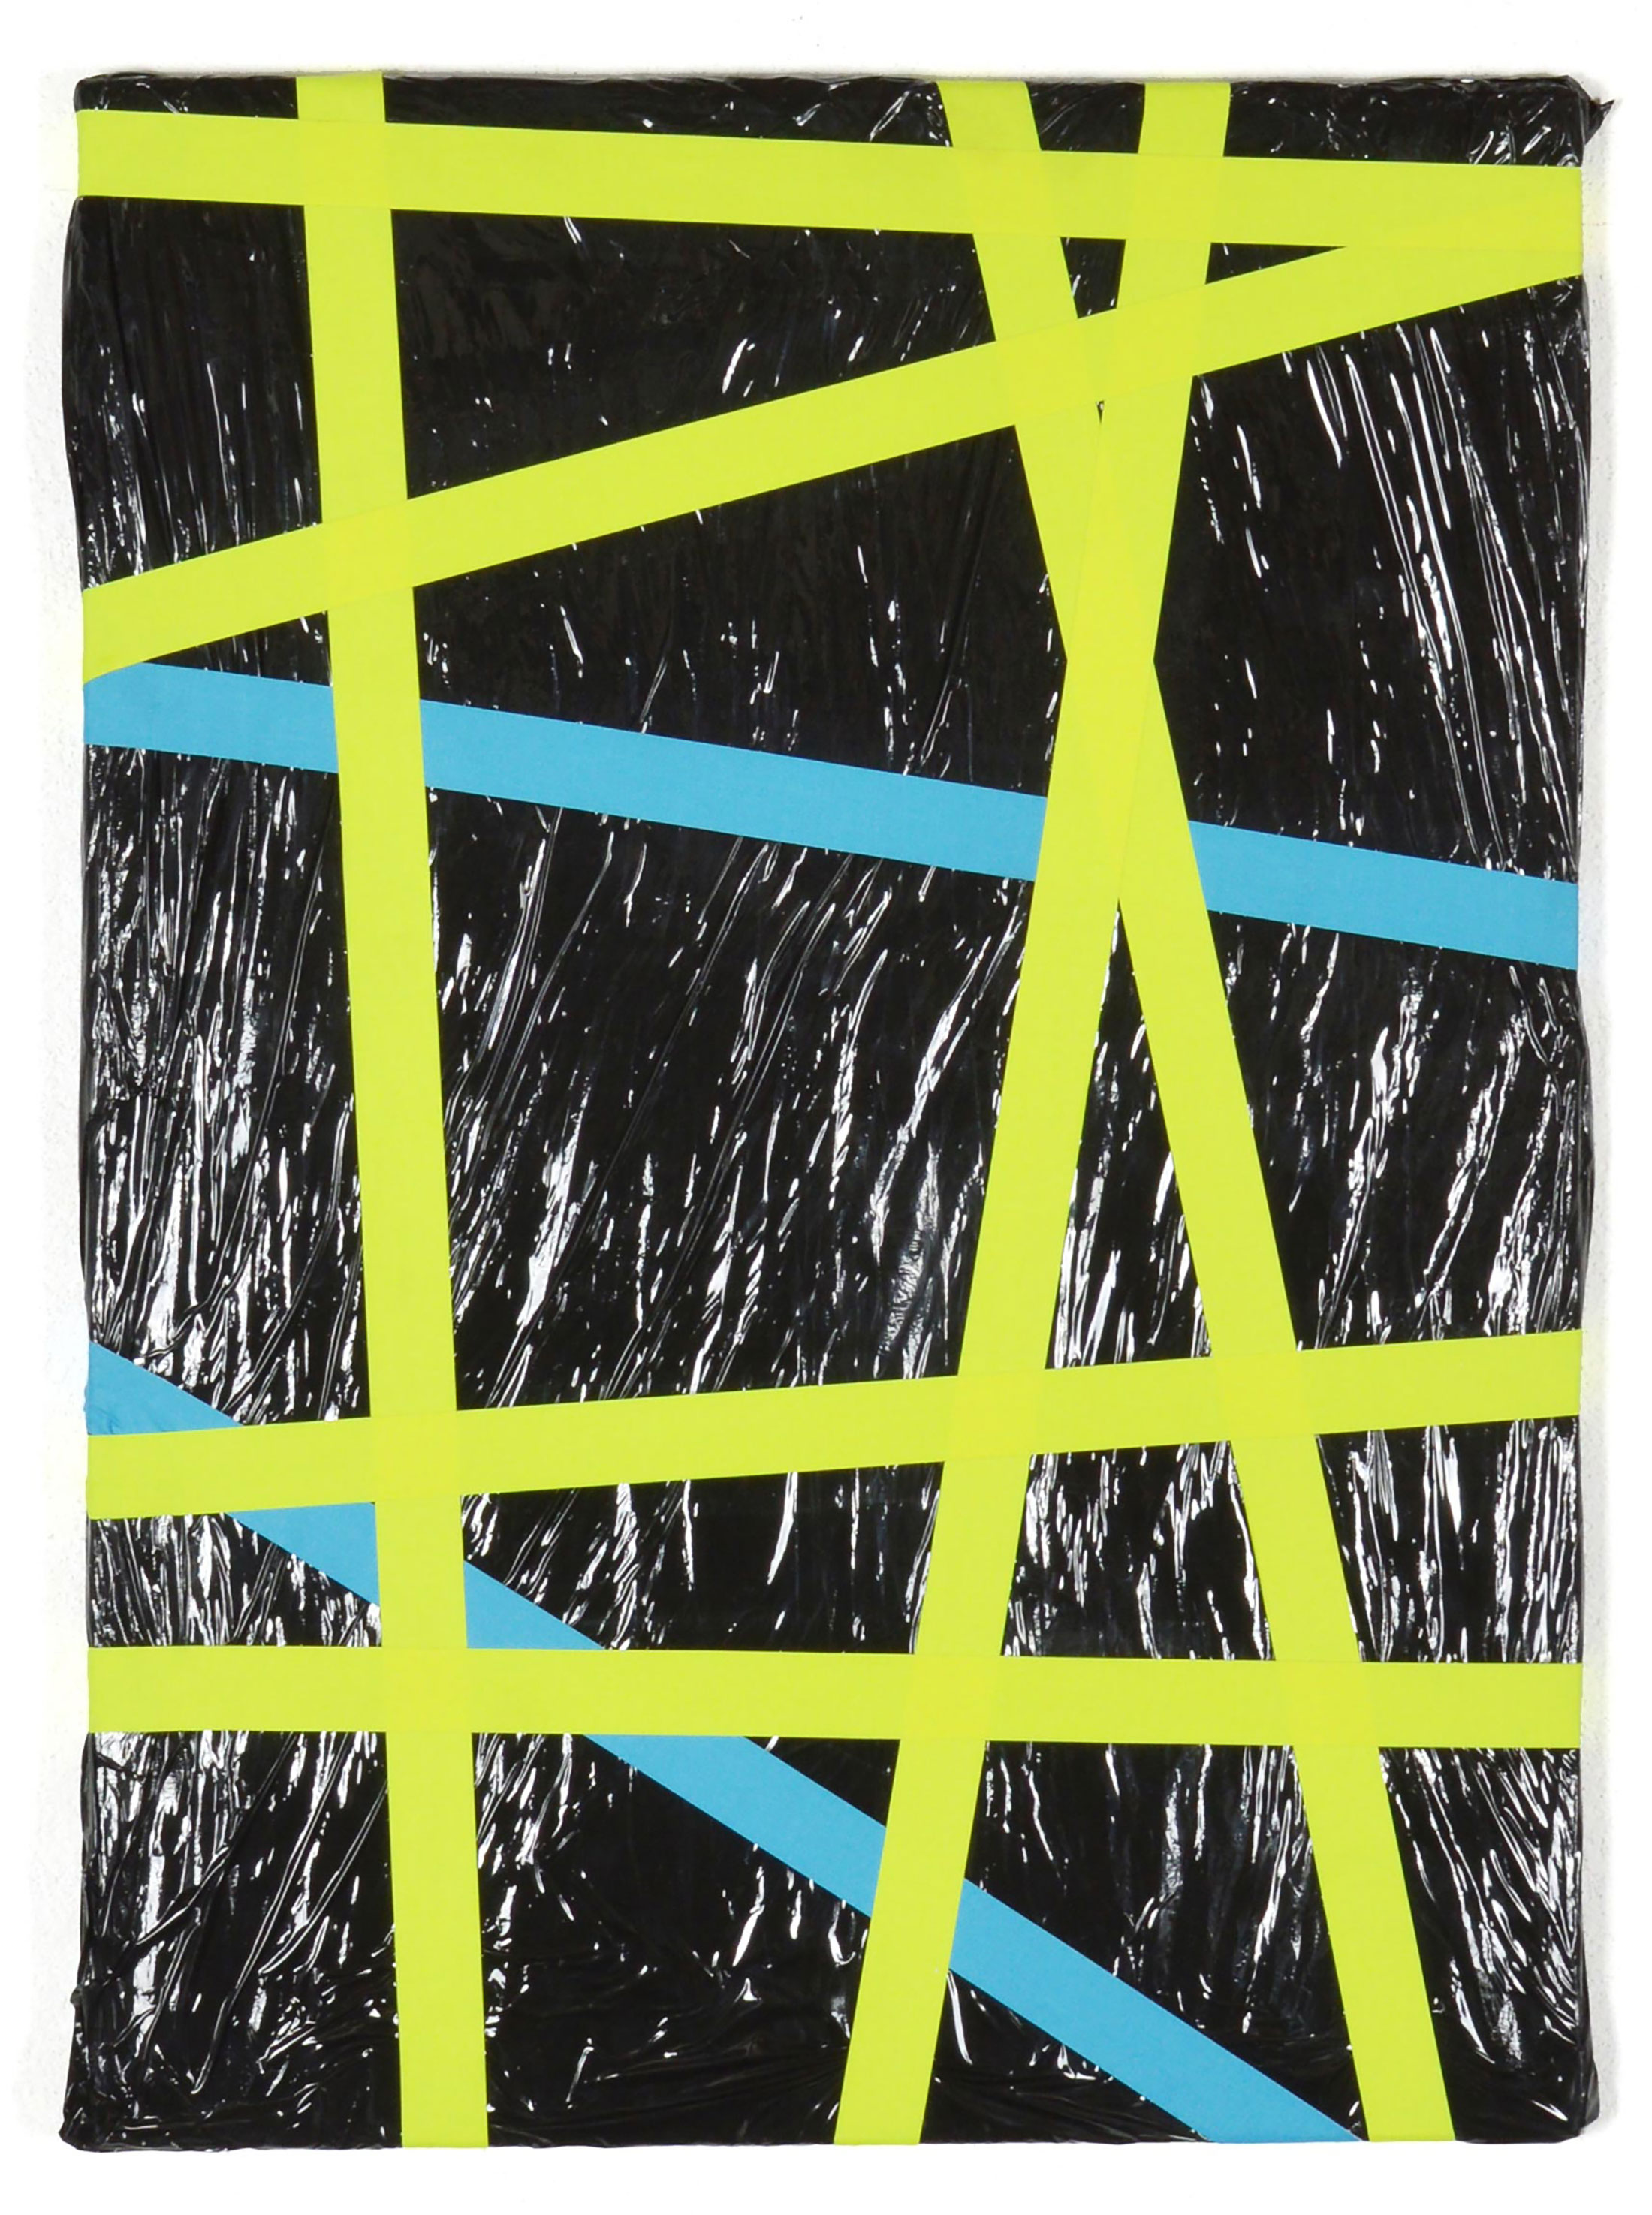 emanuel ehgartner, contemporary artist, mixed media, wrapping foil, black and yellow piece, artist to collect